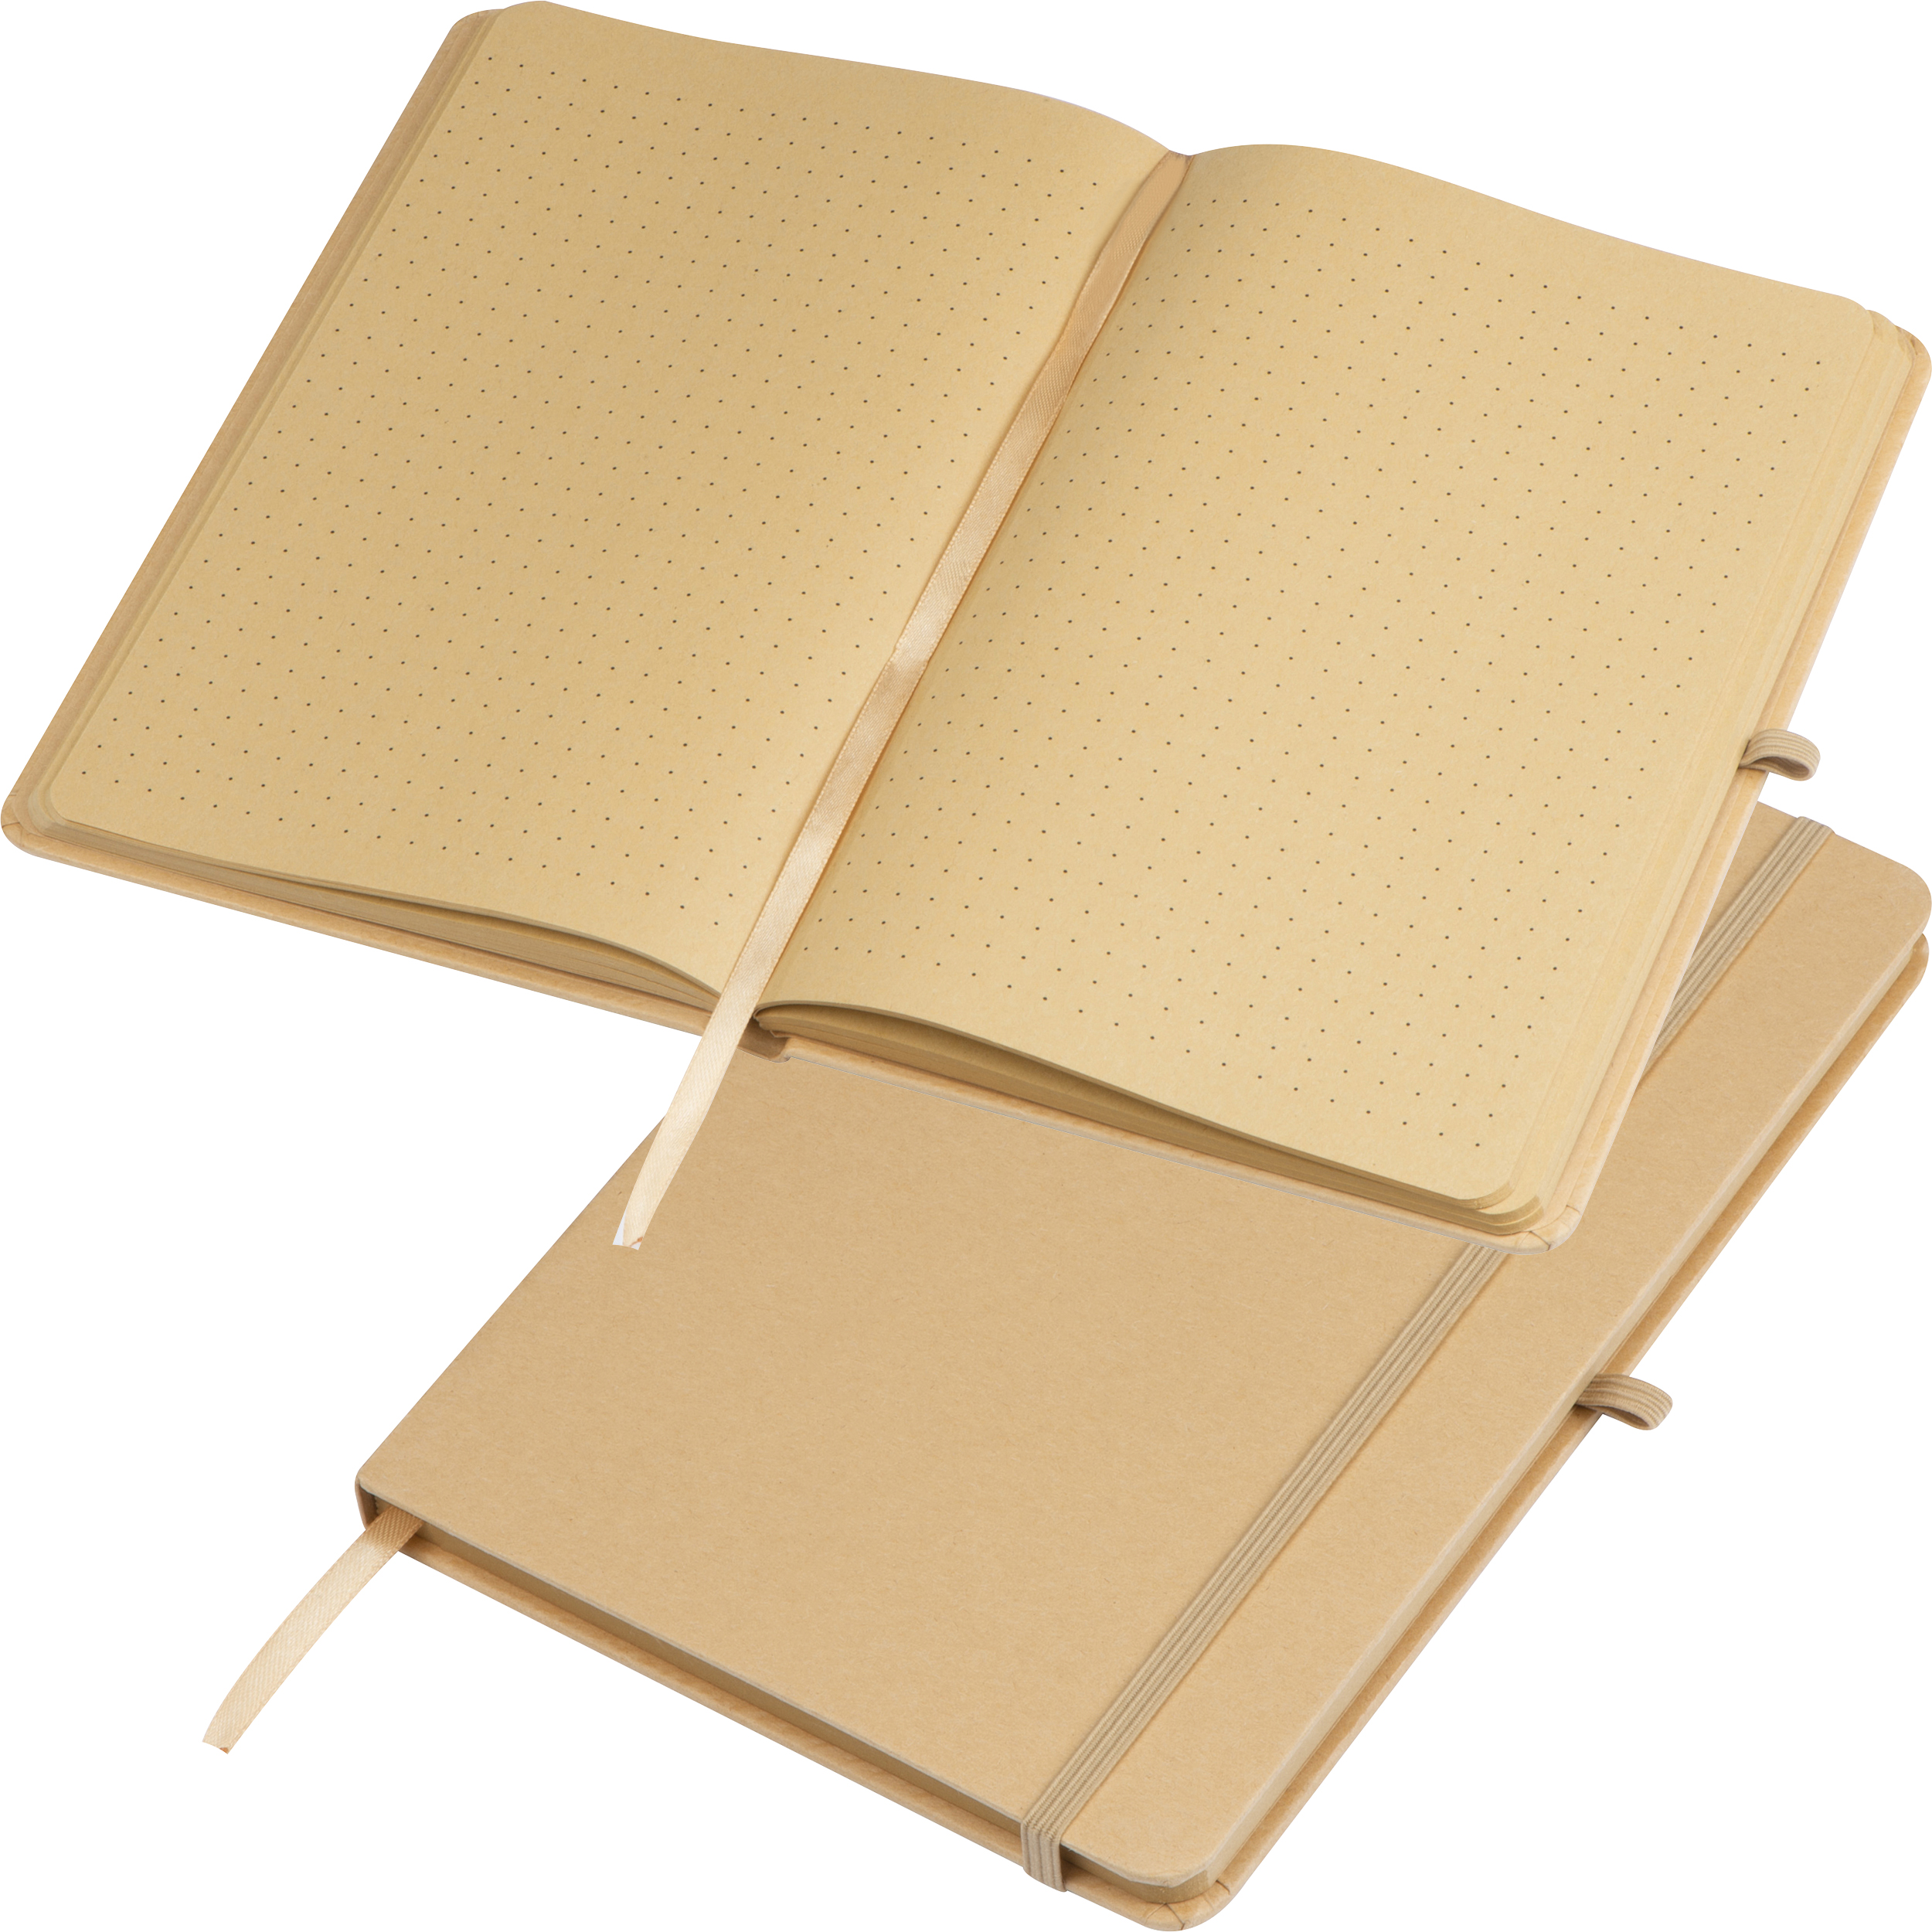 A5 Craft Paper Notebook